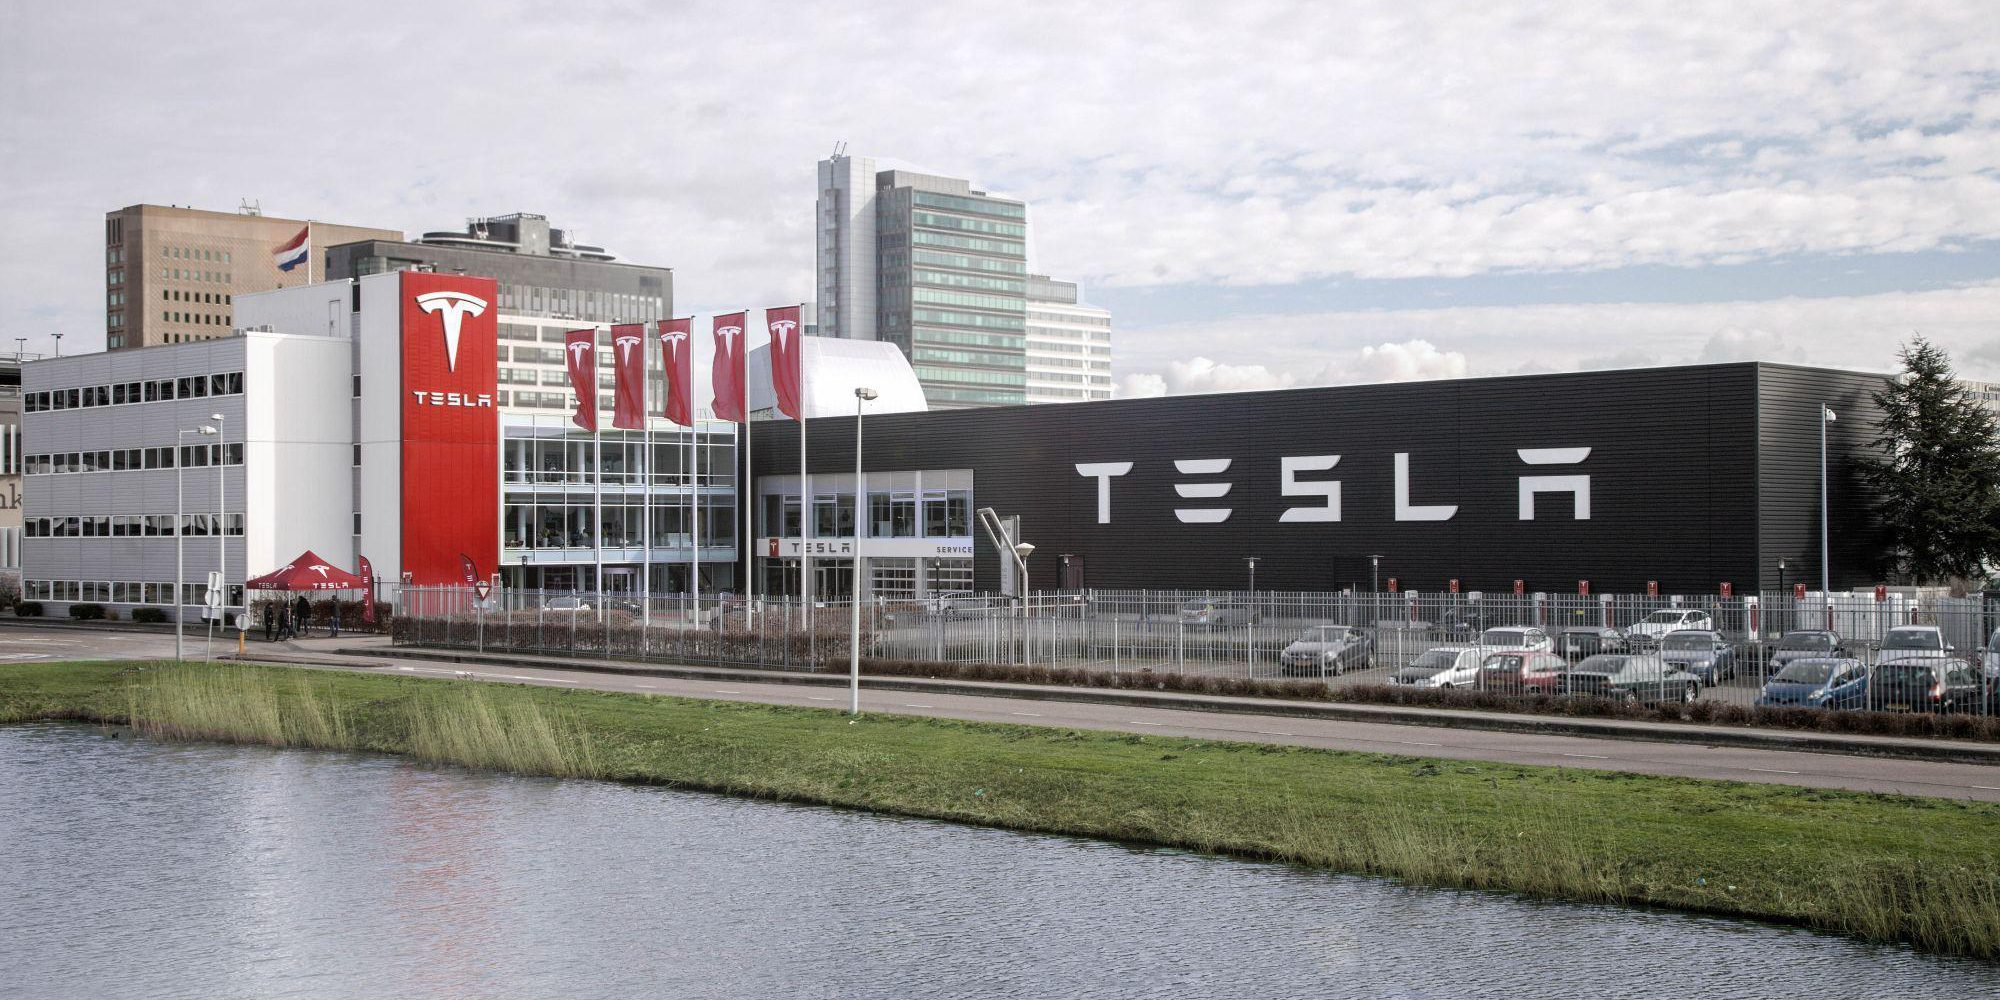 Tesla Model 3 becomes best-selling car in the Netherlands with 10,000 units - Electrek